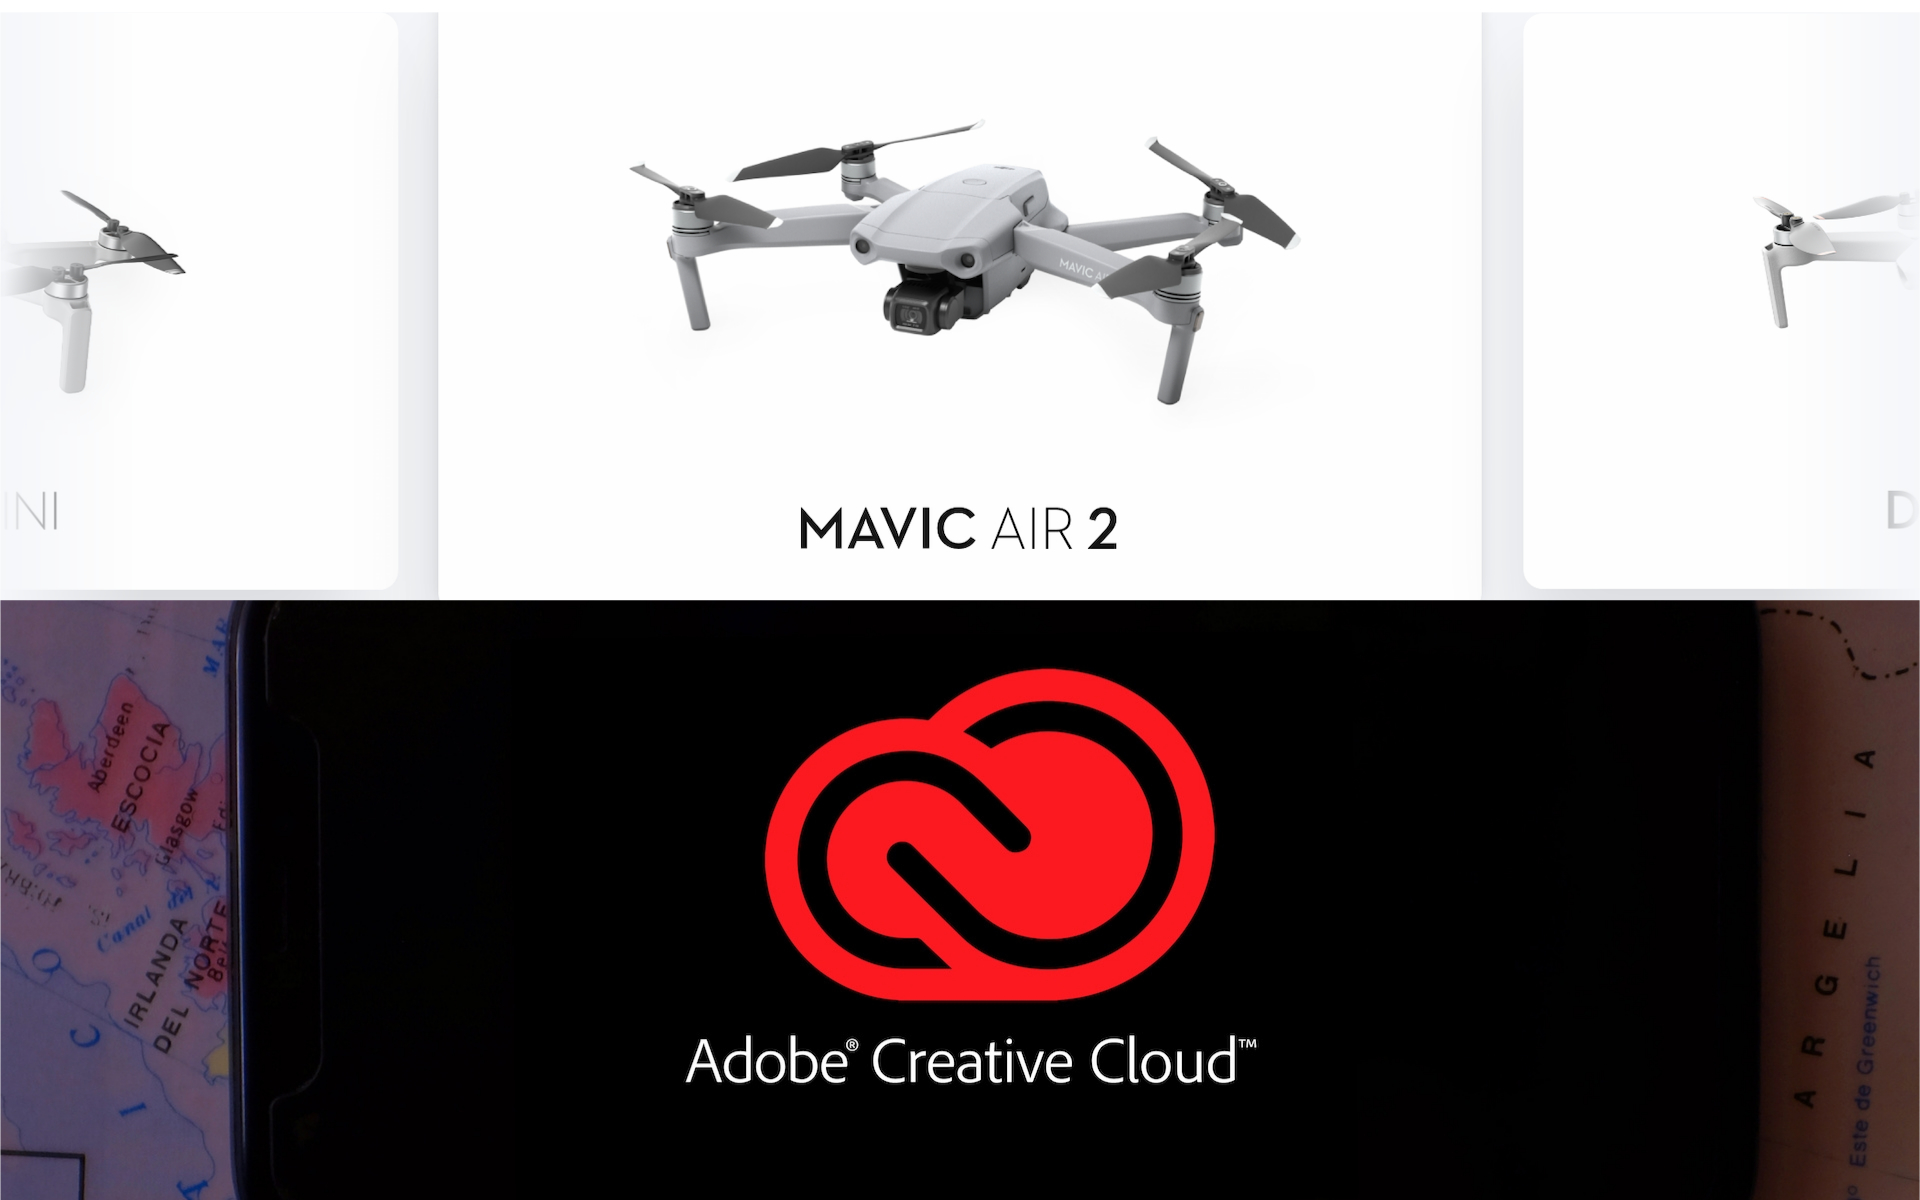 DJI Fly App 更新隱藏驚喜:3 個月免費 Adobe Creative Cloud 試用